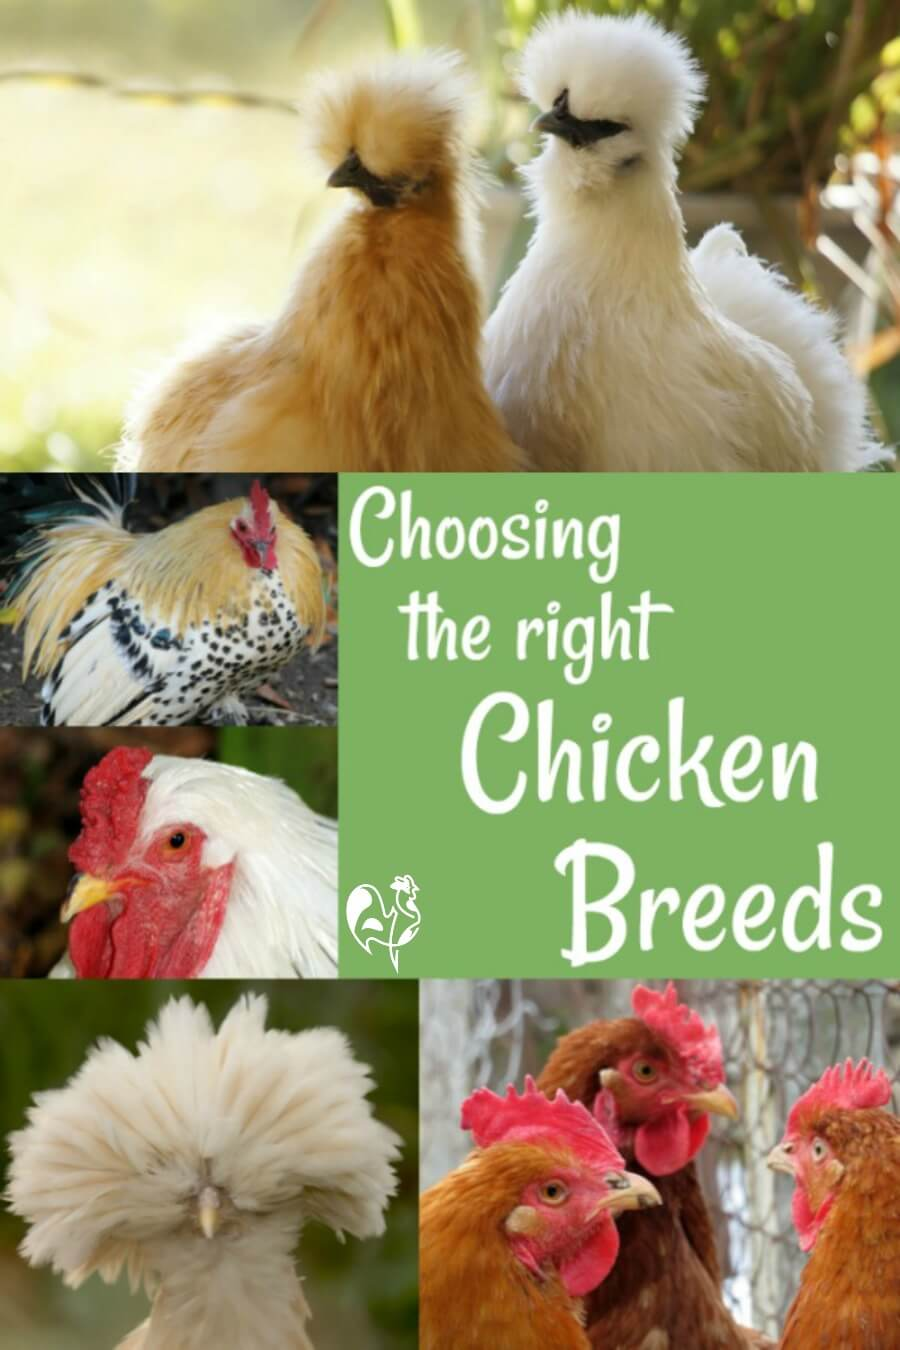 Backyard chicken breeds with pictures! in 2020